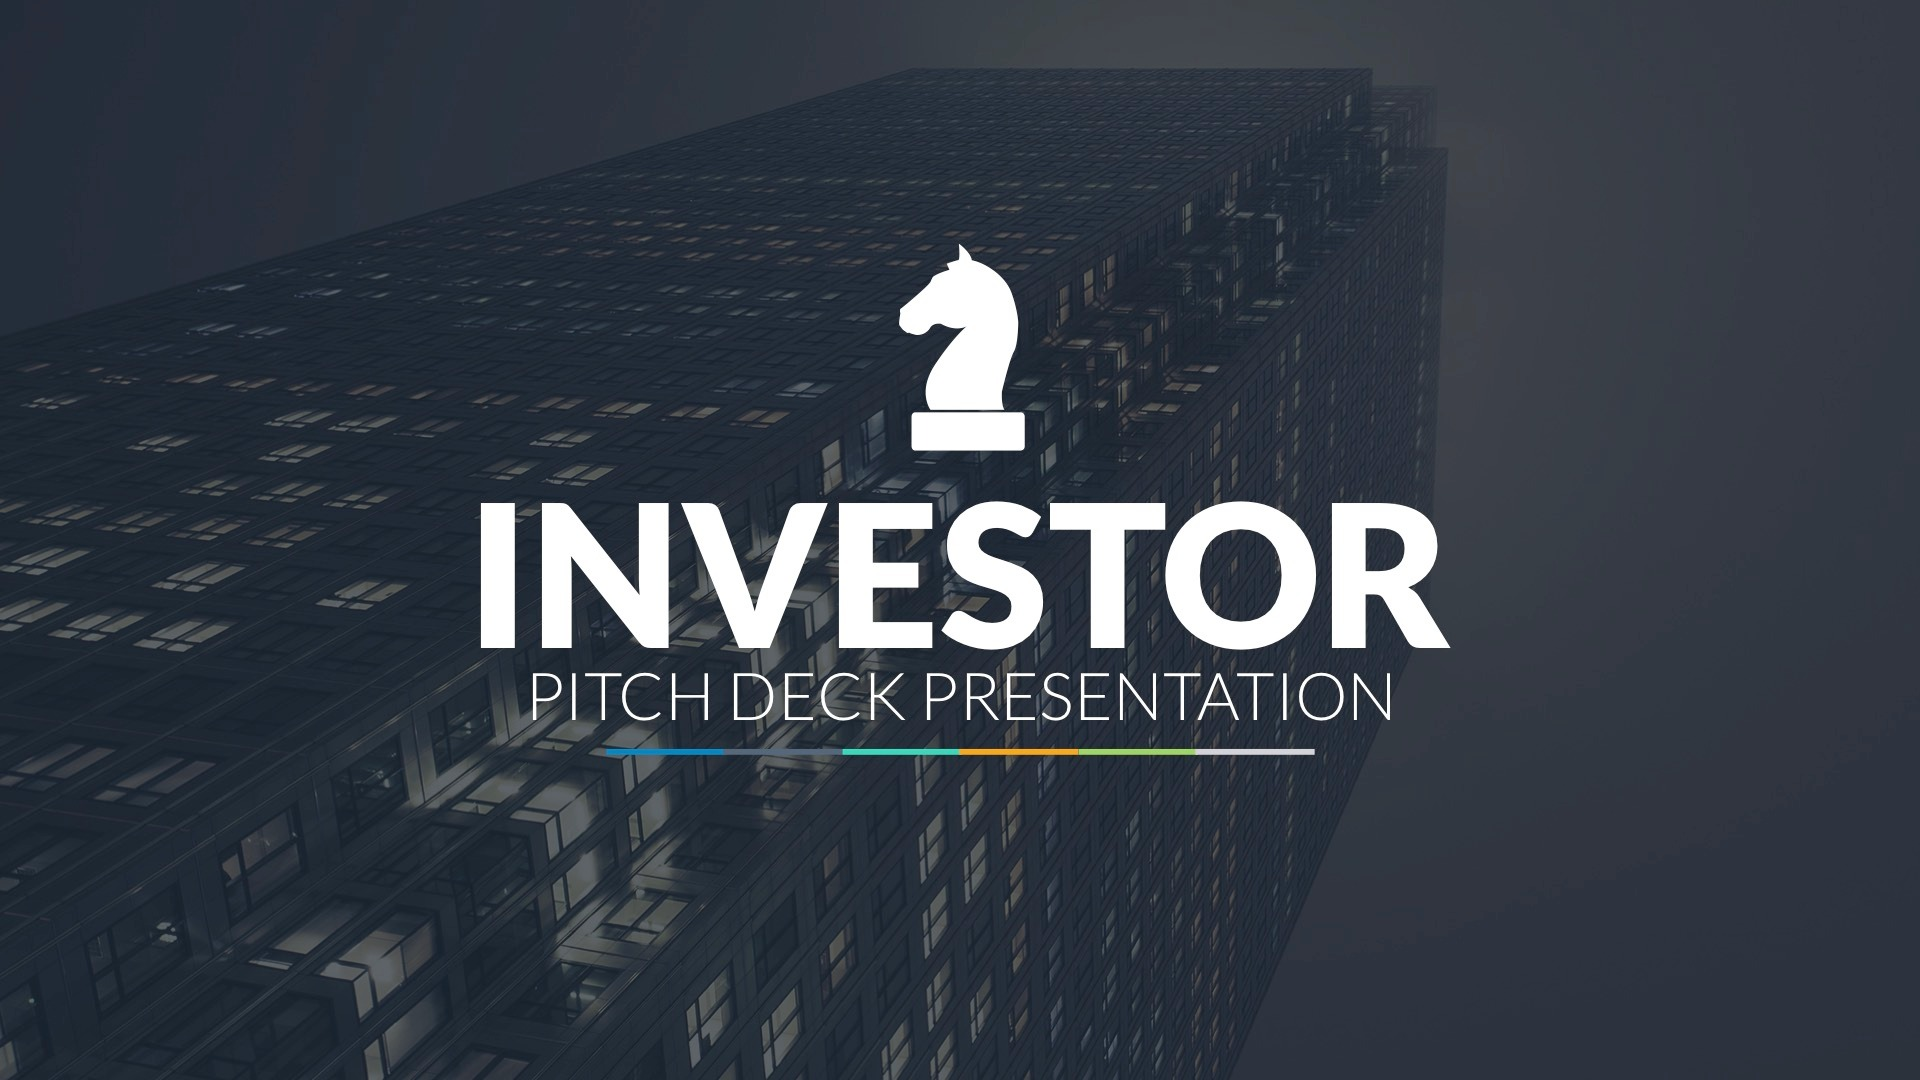 Investor Pitch Deck PowerPoint Template By LouisTwelveDesign - Investor packet template